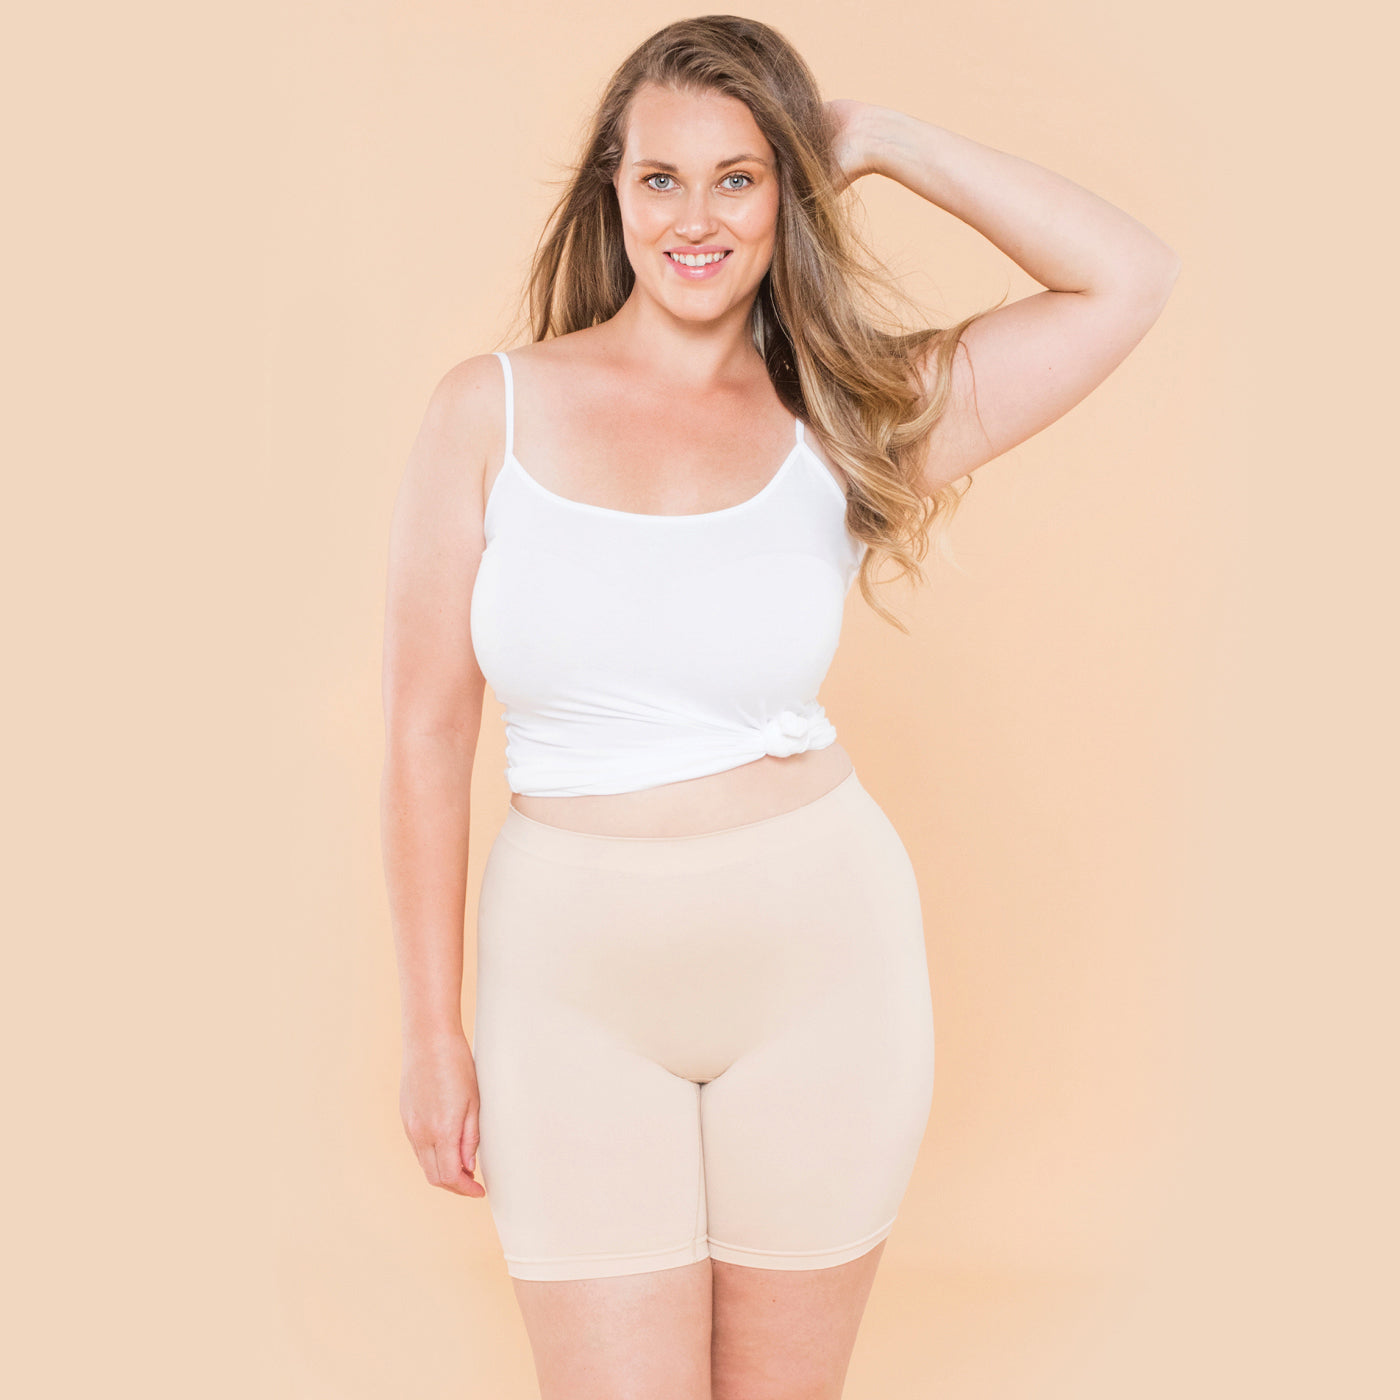 color:Beige|model:Austen is 5'8 and wearing M/L